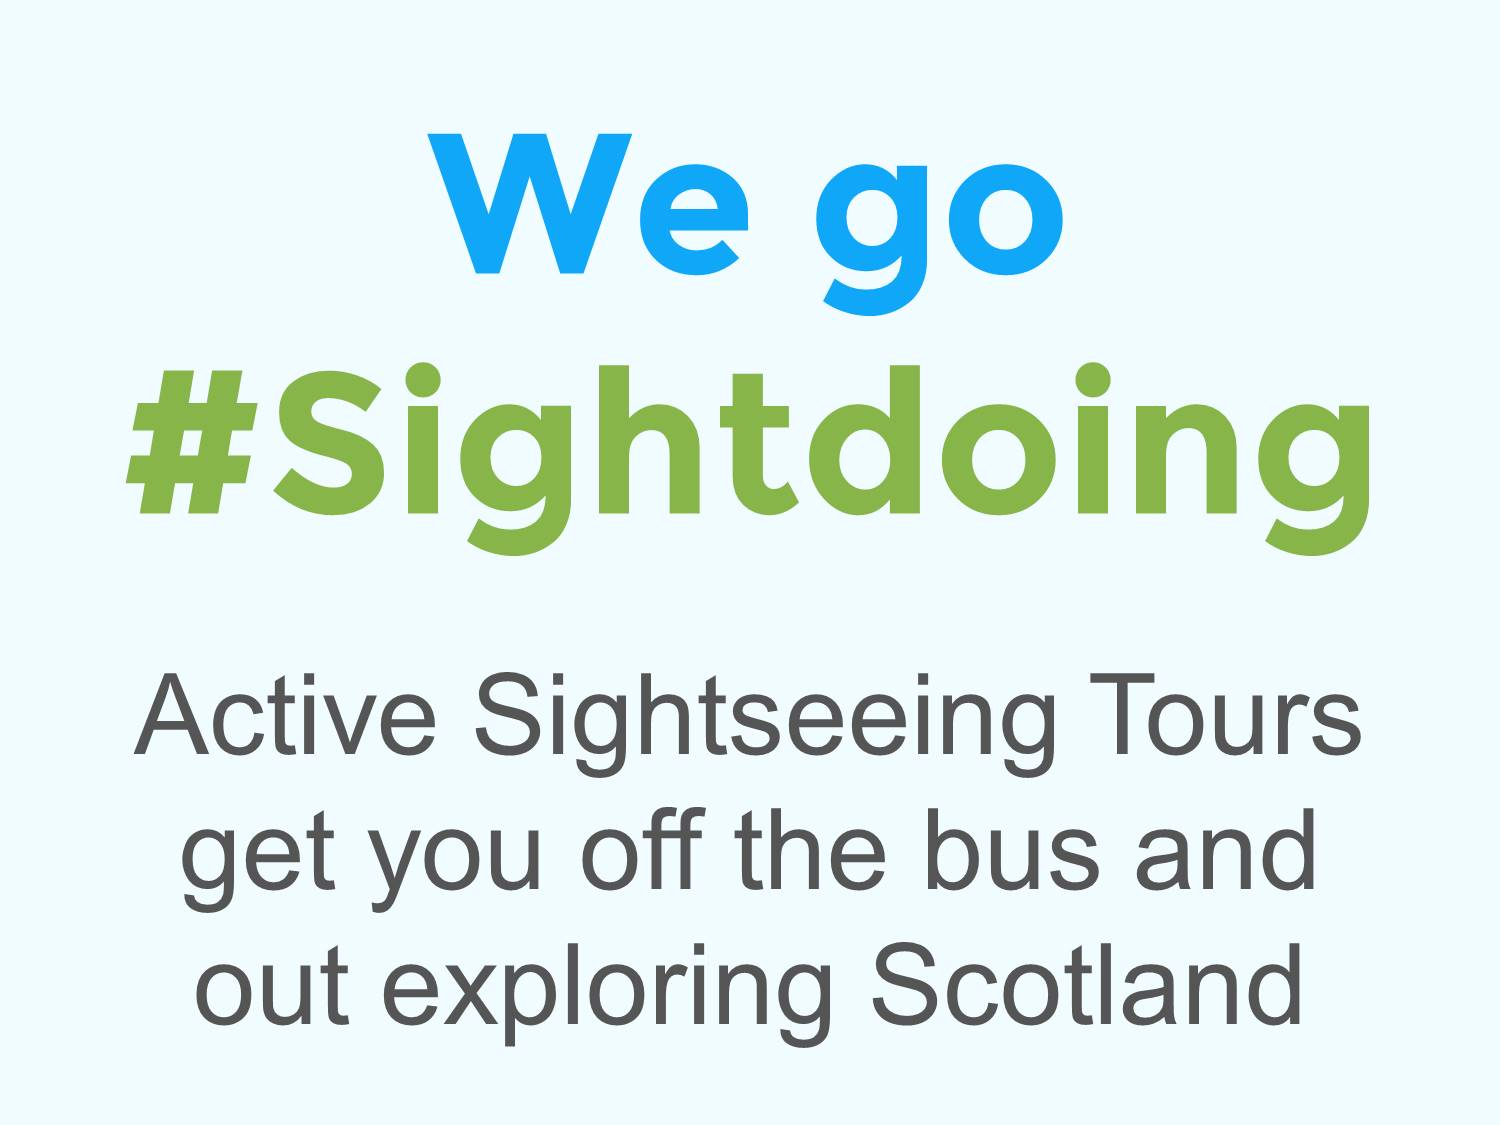 sightdoing sightseeing tours logo.jpg